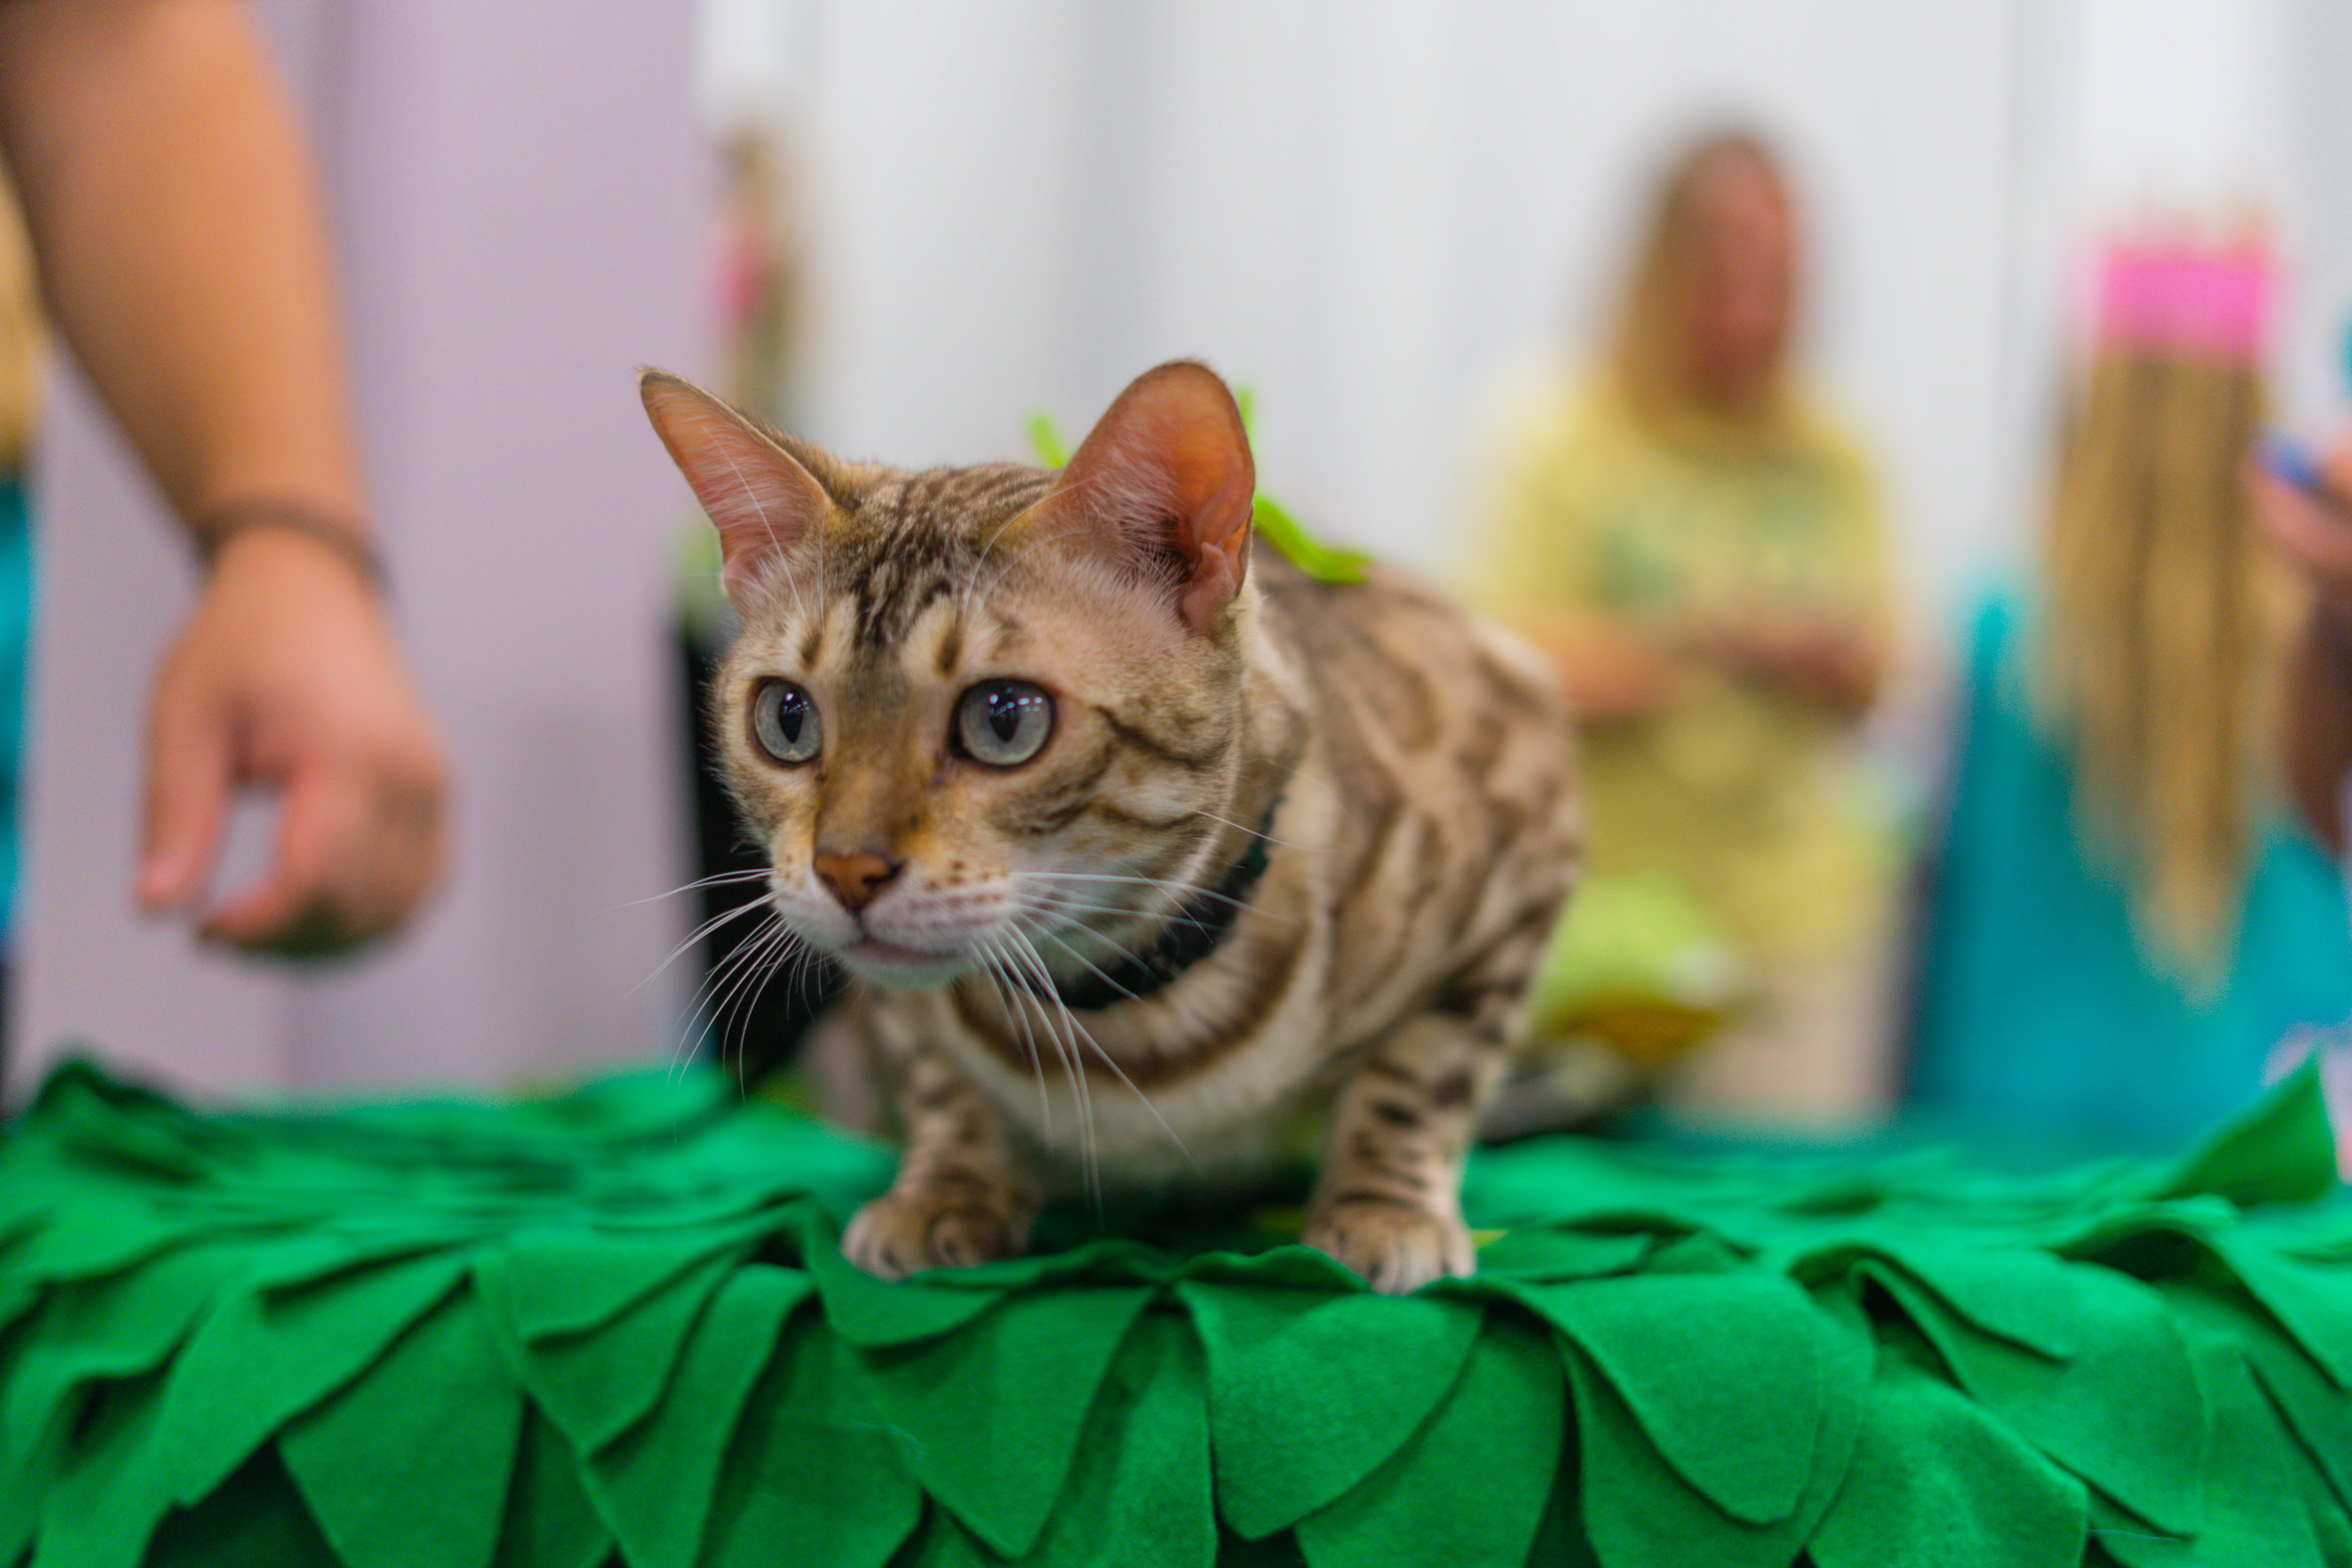 Leap into January with Leo - Learn all about Bengal Cats and our January ambassador of month, Leo